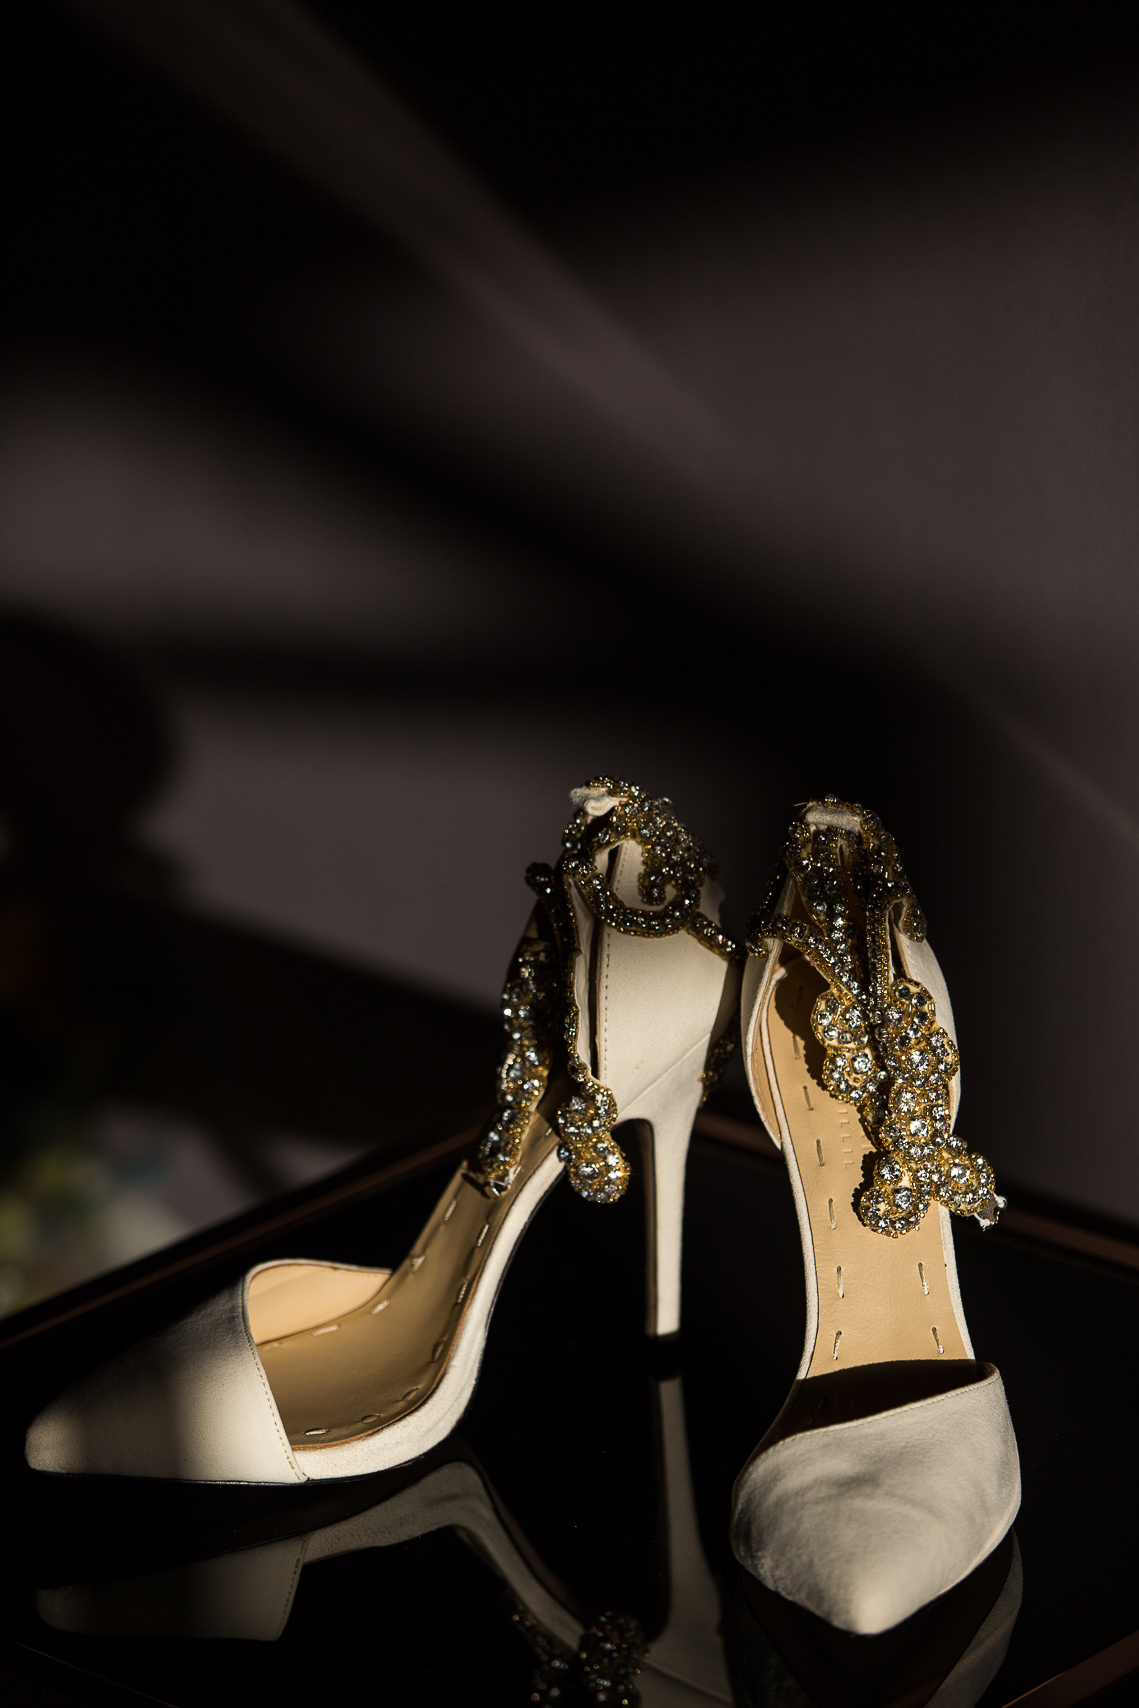 Wedding shoes with natural light and shadows